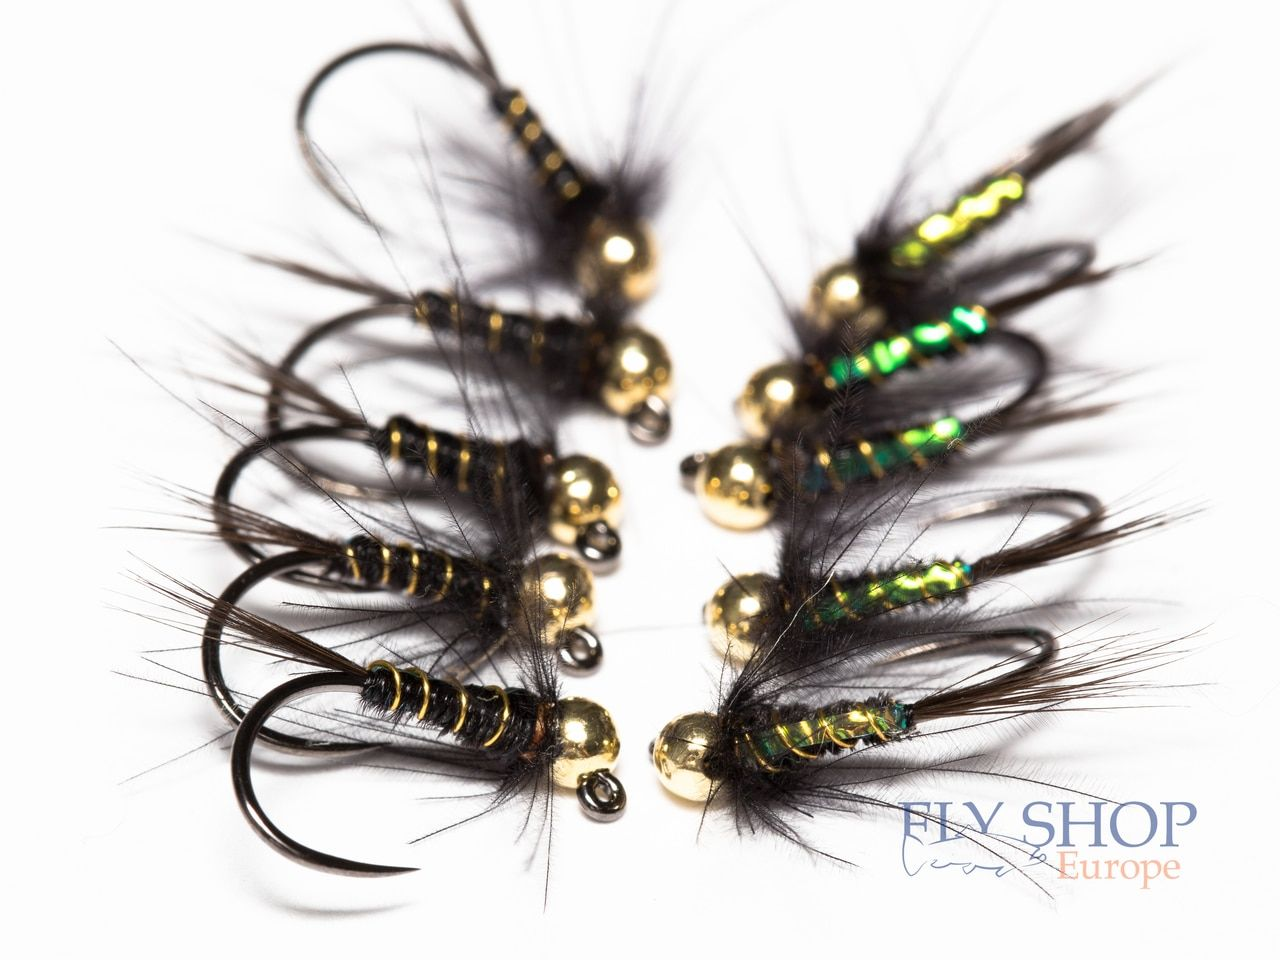 Caddis Pupae Sedges Nymphs Lake River Trout Fly Fishing Barbless Wet Flies Nymph